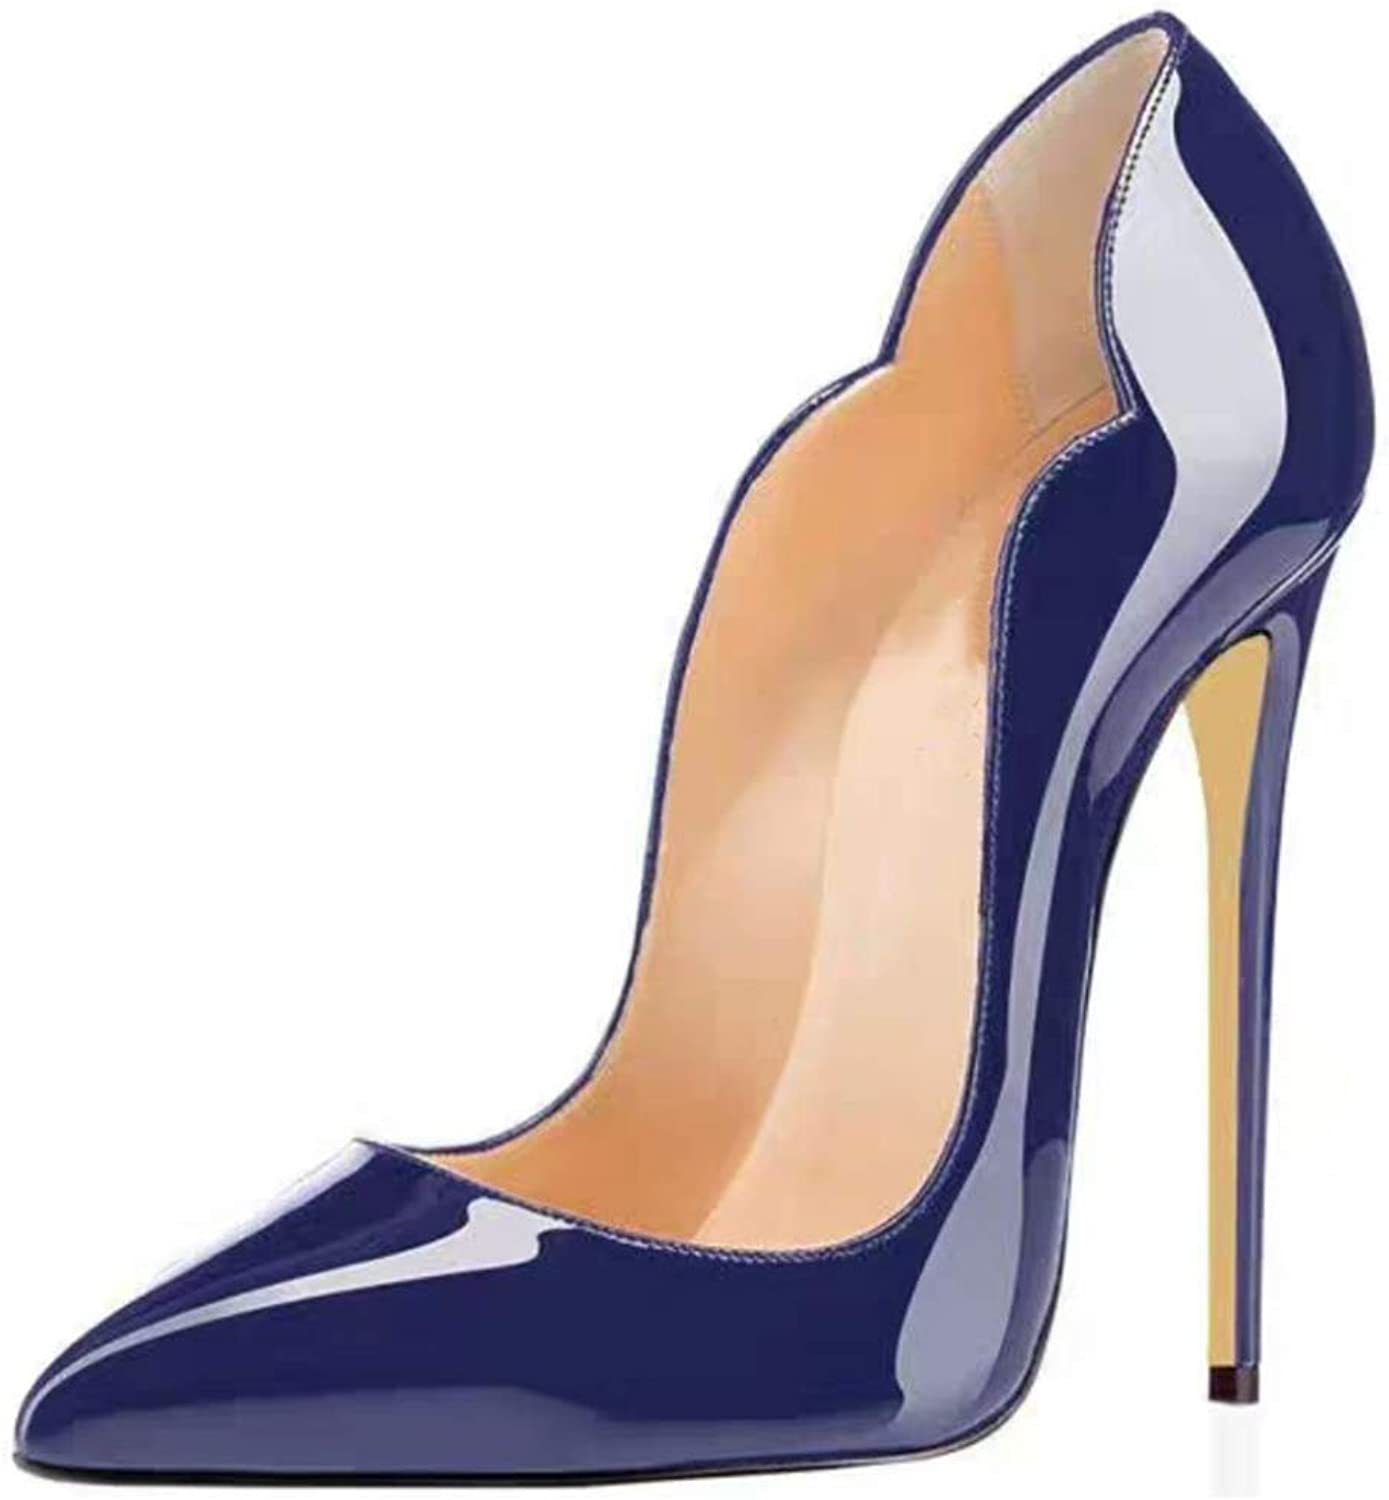 Spring Fall Women's Closed-Toe Pumps Work Court shoes Patent Leather Heel Woman Purps Sexy shoes women Tacon Black RED Women's HIGH Heels shoes